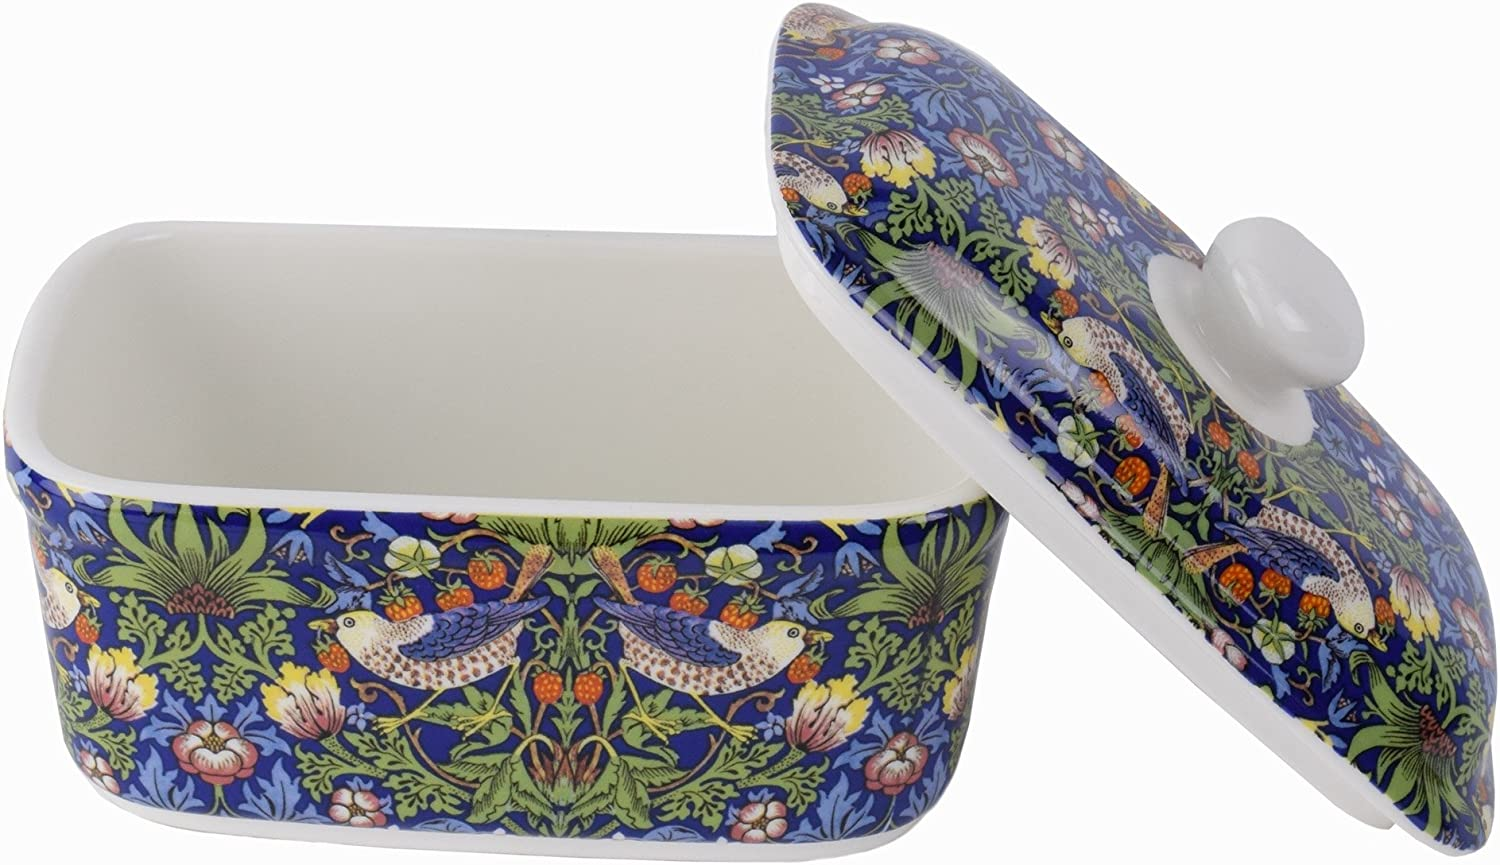 William Morris Blue Strawberry Thief Butter Dish